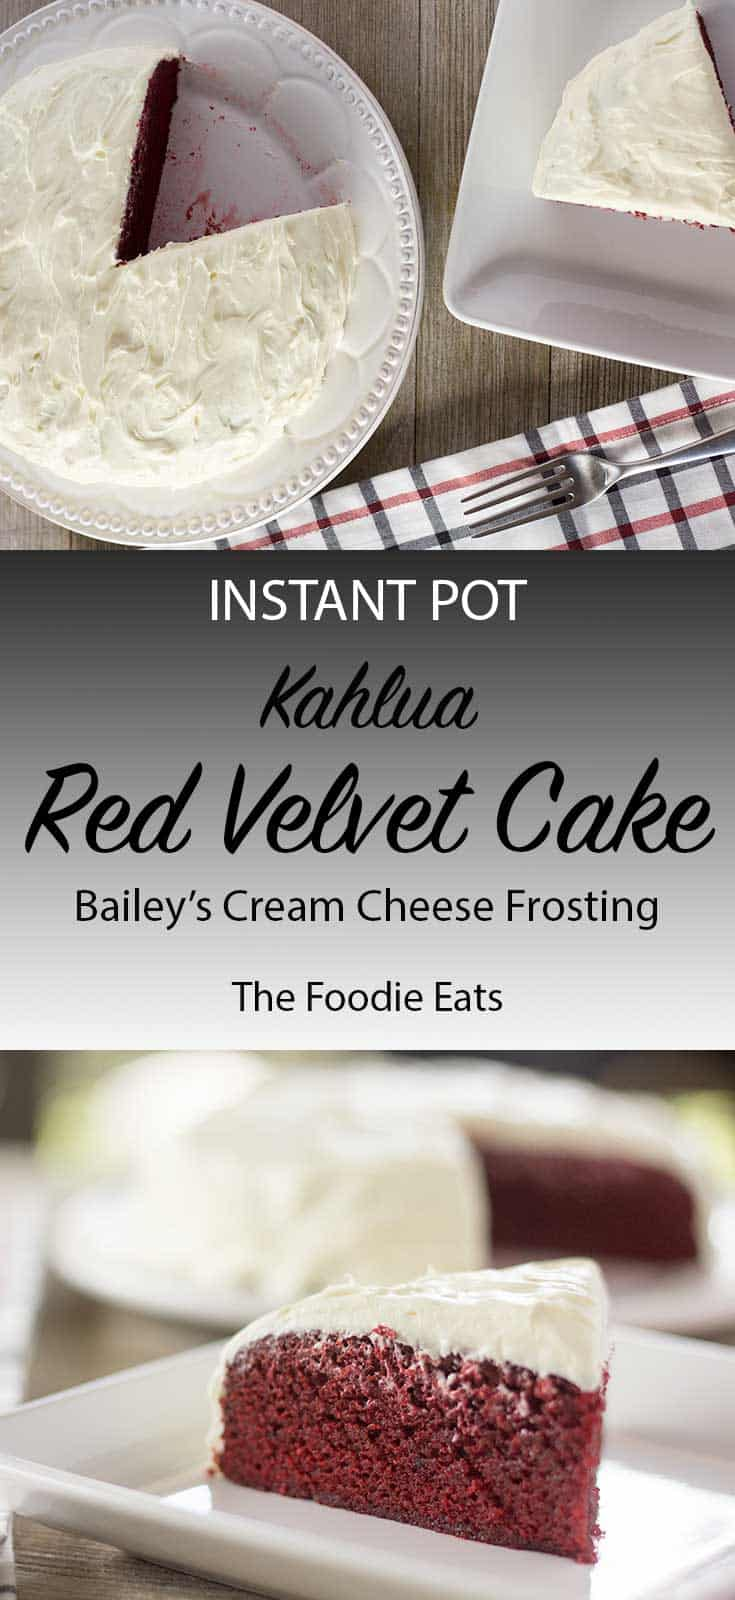 Instant Pot Red Velvet Cake with Kahlua and Bailey's Cream Cheese Frosting | The Foodie Eats